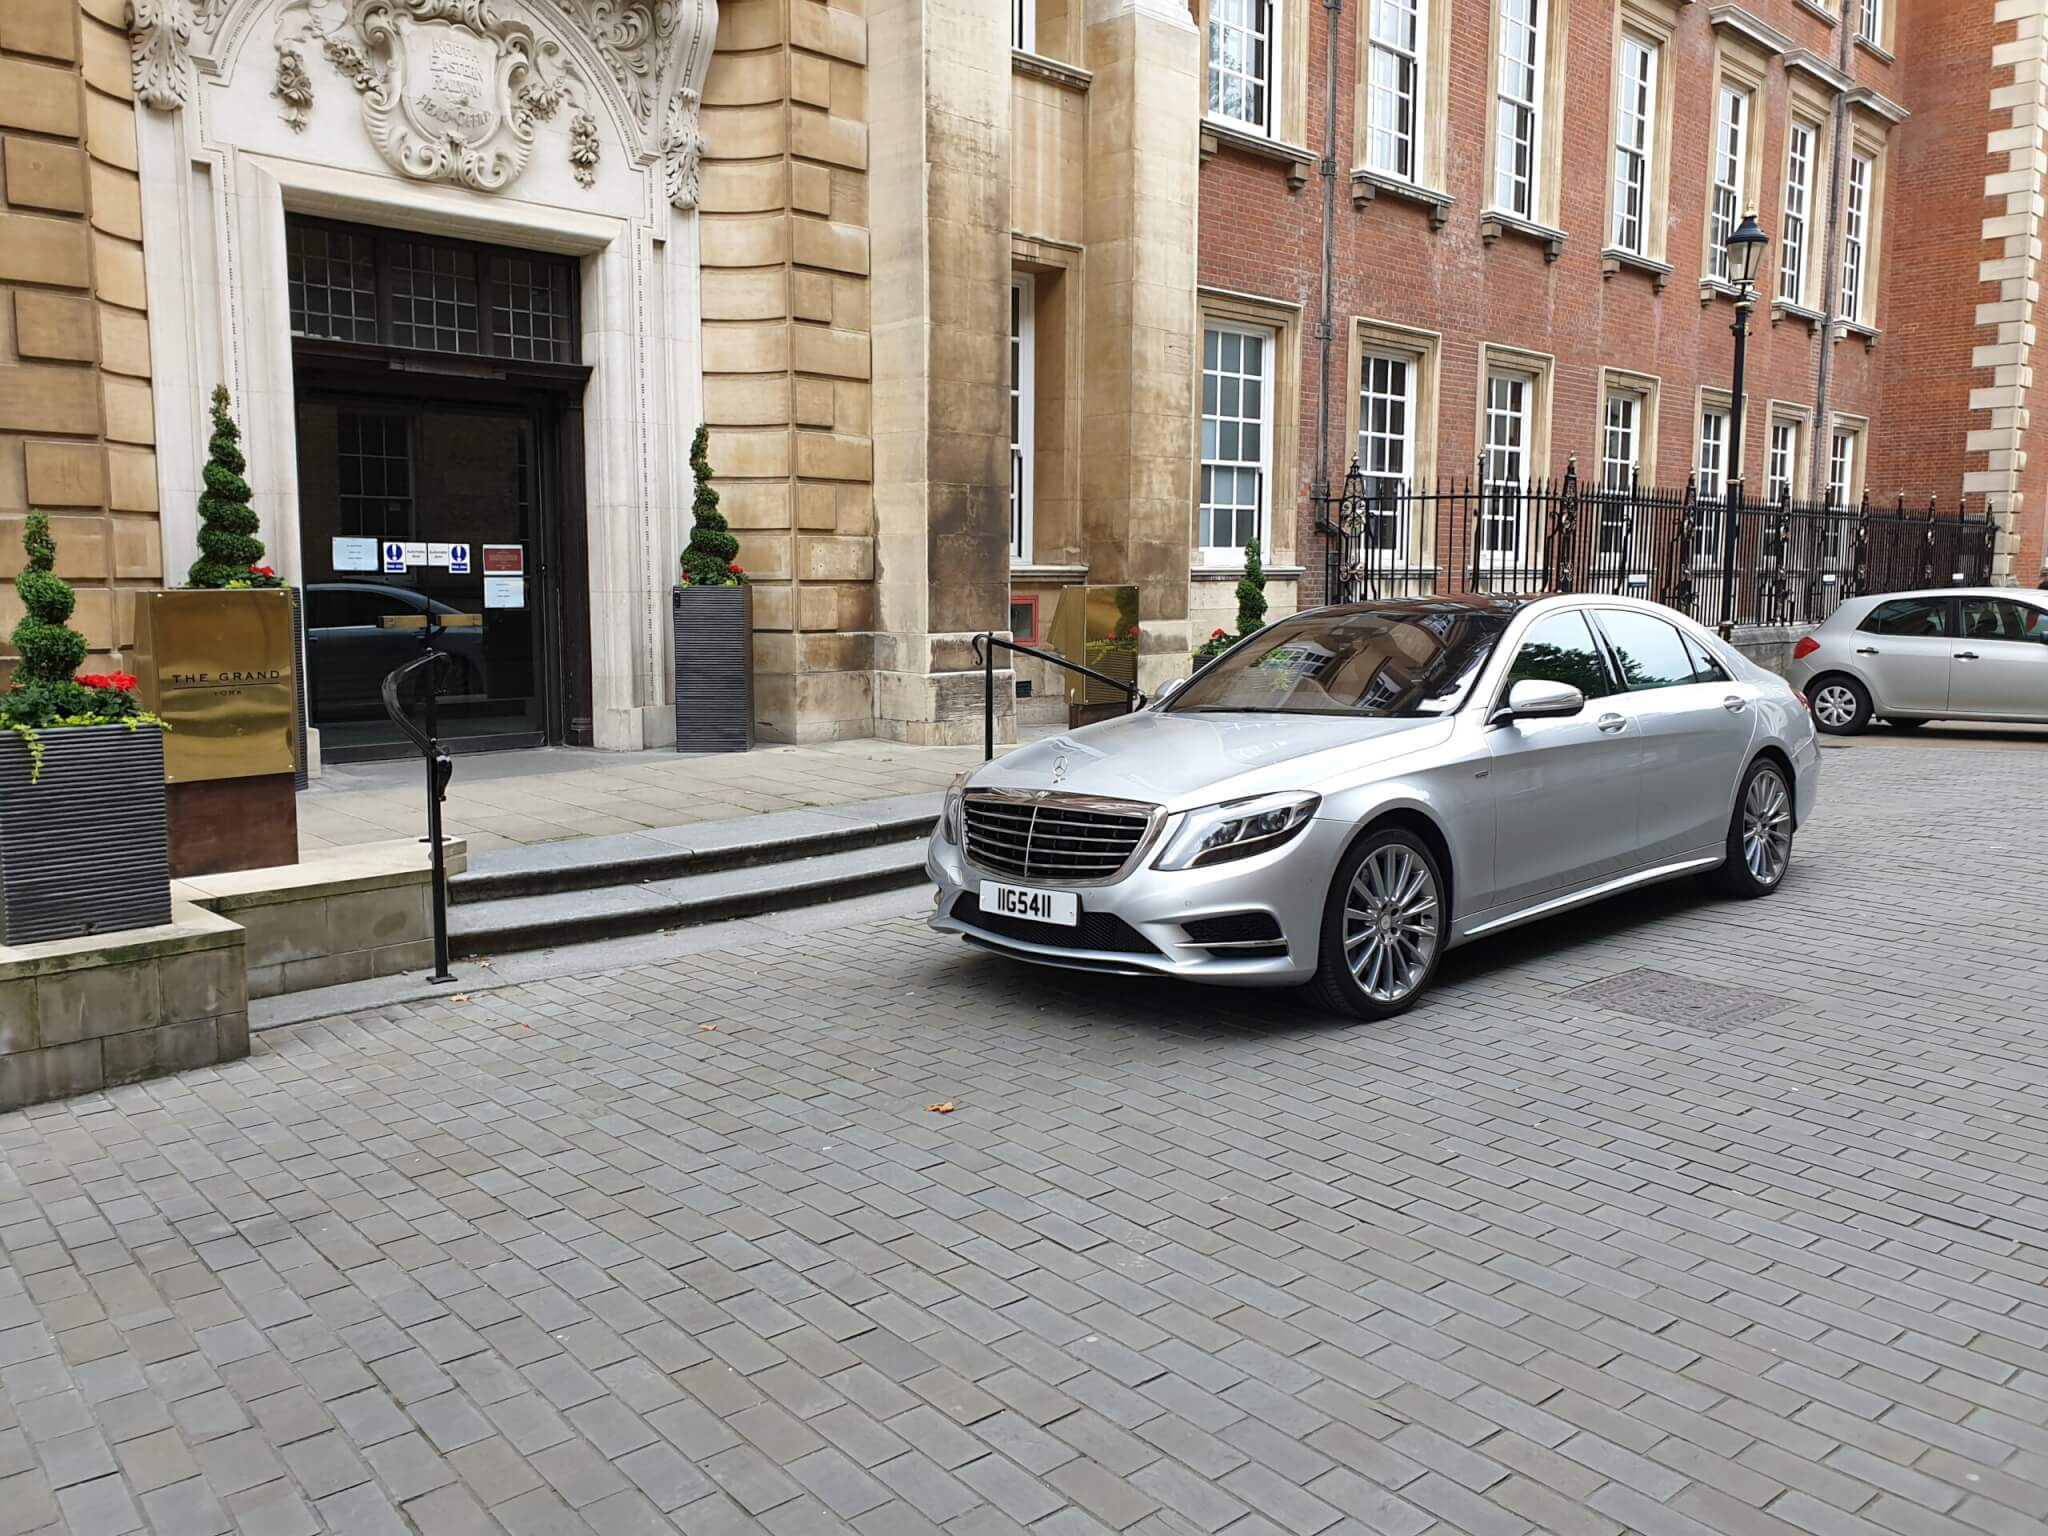 2018 Mercedes s class outside The Grand Hotel in York